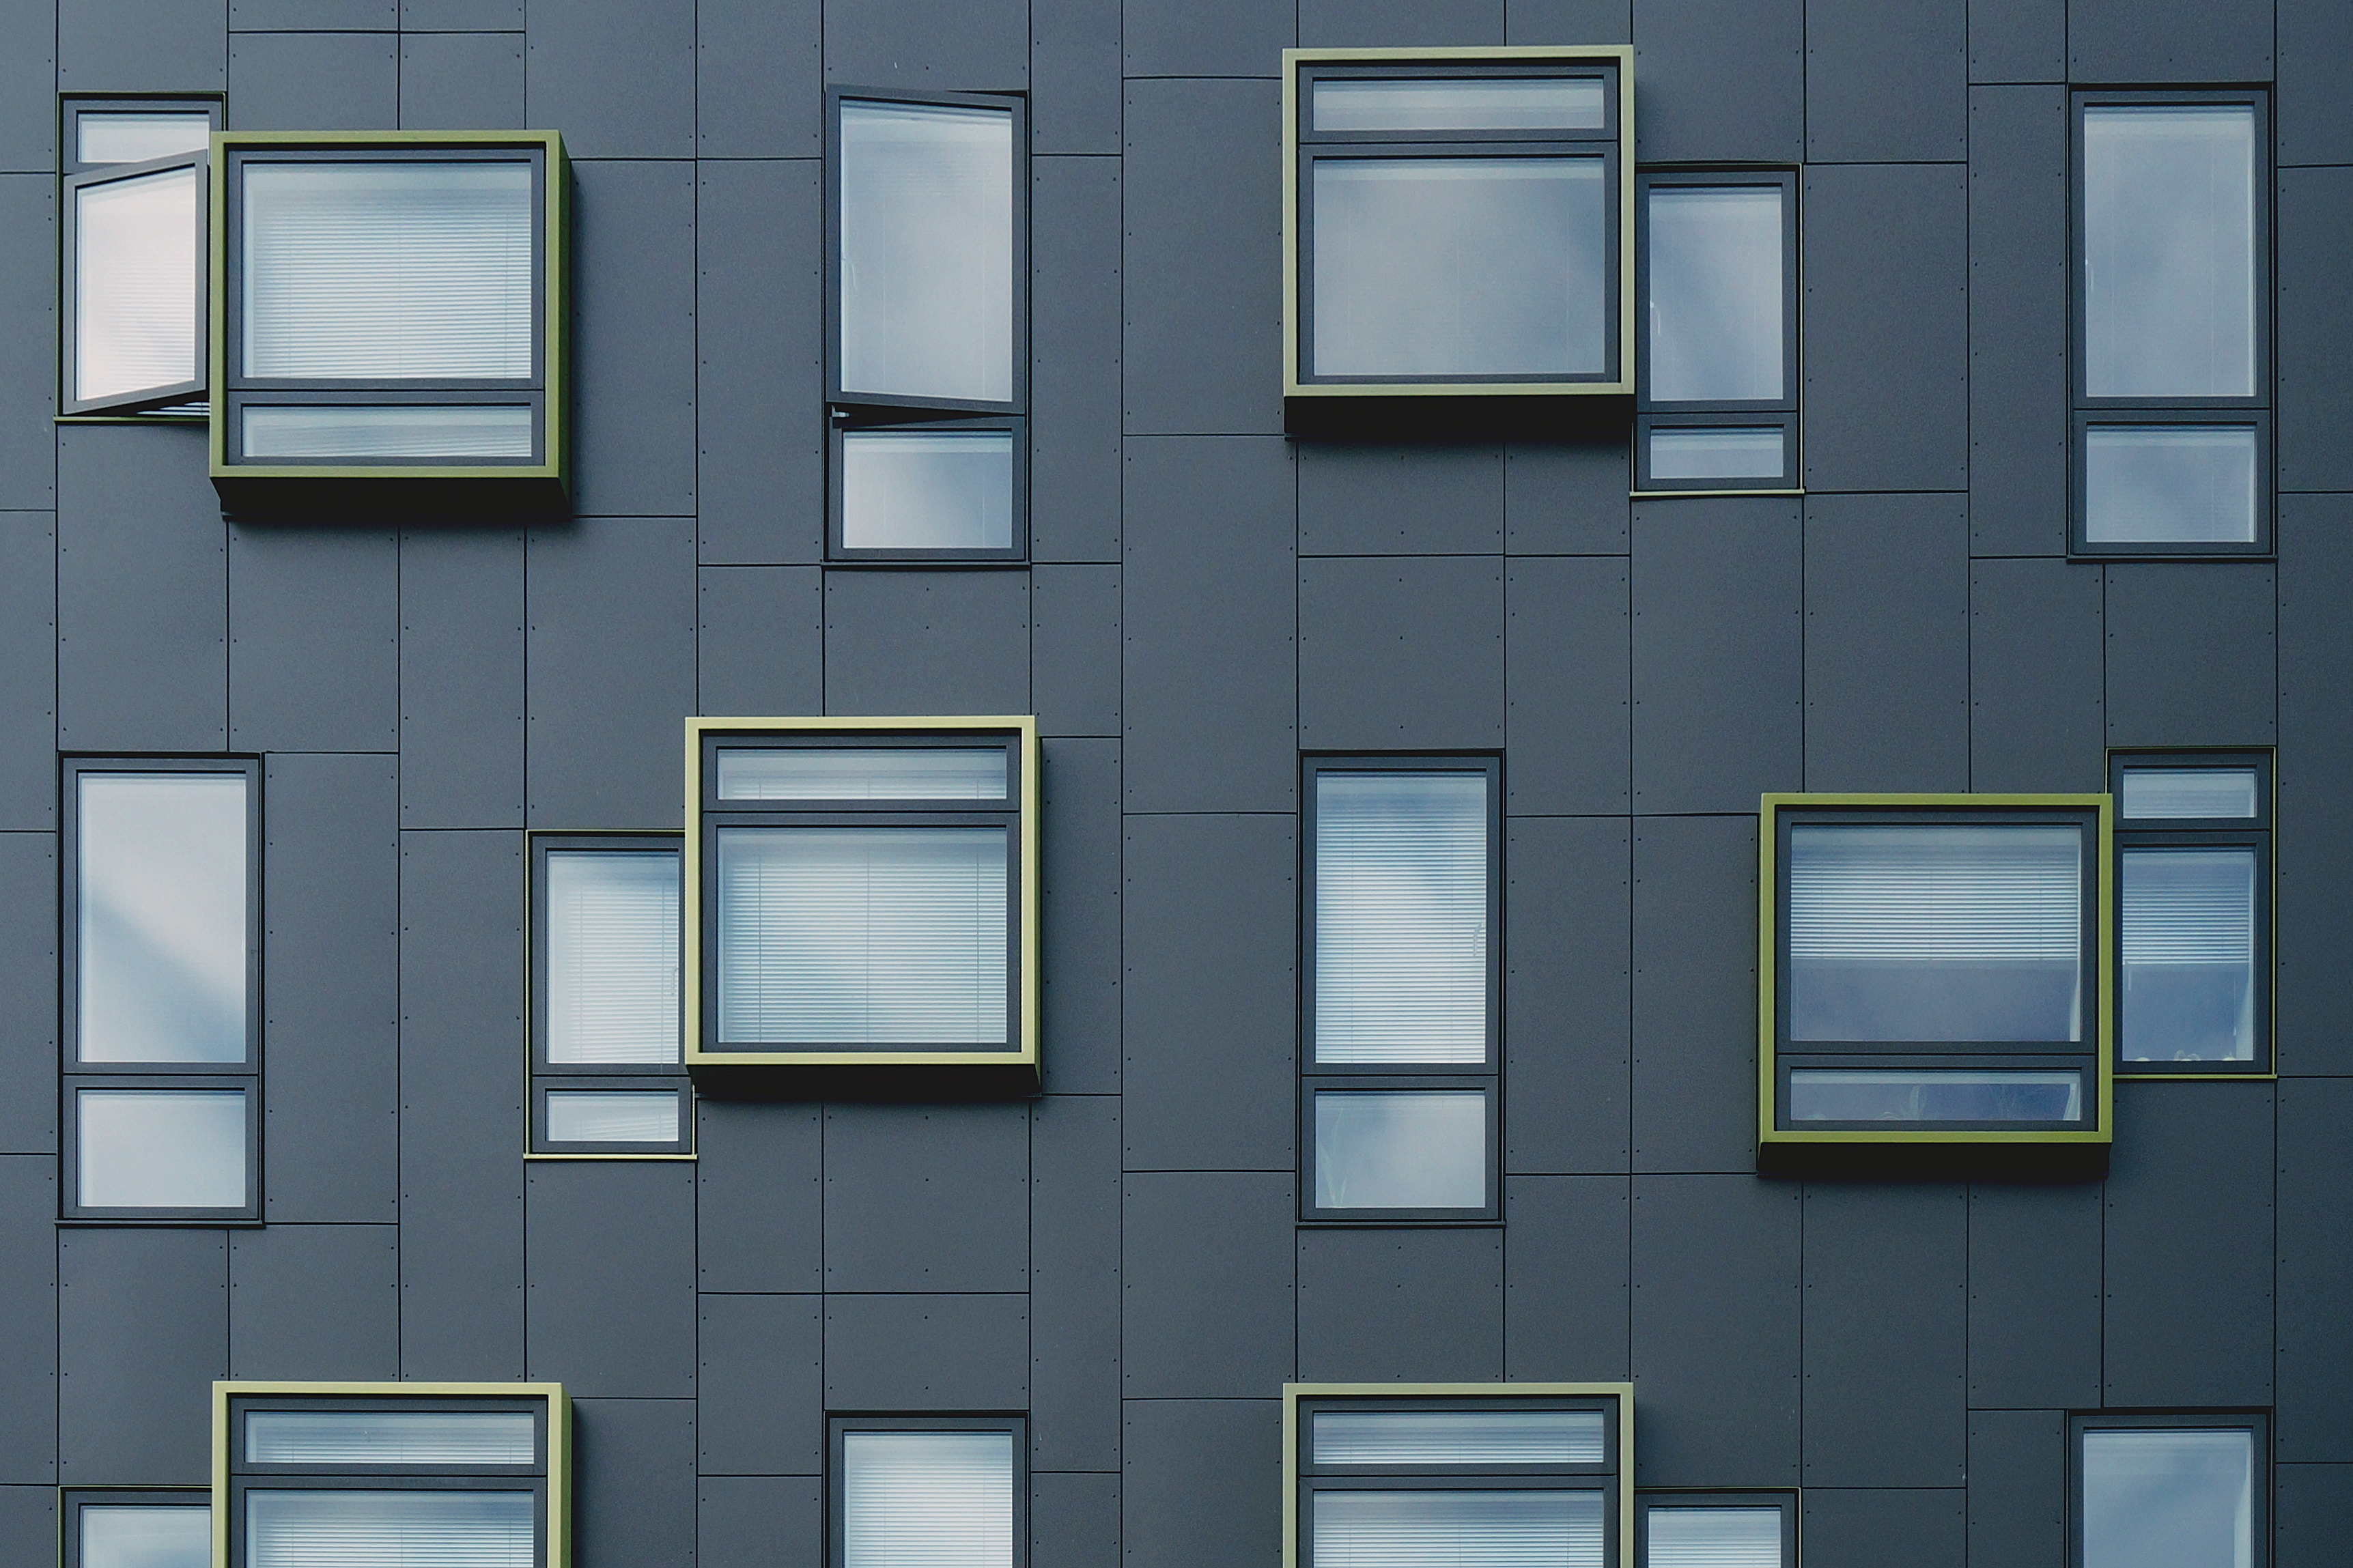 In 2017 UNECE adopted the Framework Guidelines for Energy Efficiency Standards in Buildings which promotes the adoption of aggressive, performance-based codes for buildings. Photo by Dmitri Popov via Unsplash.